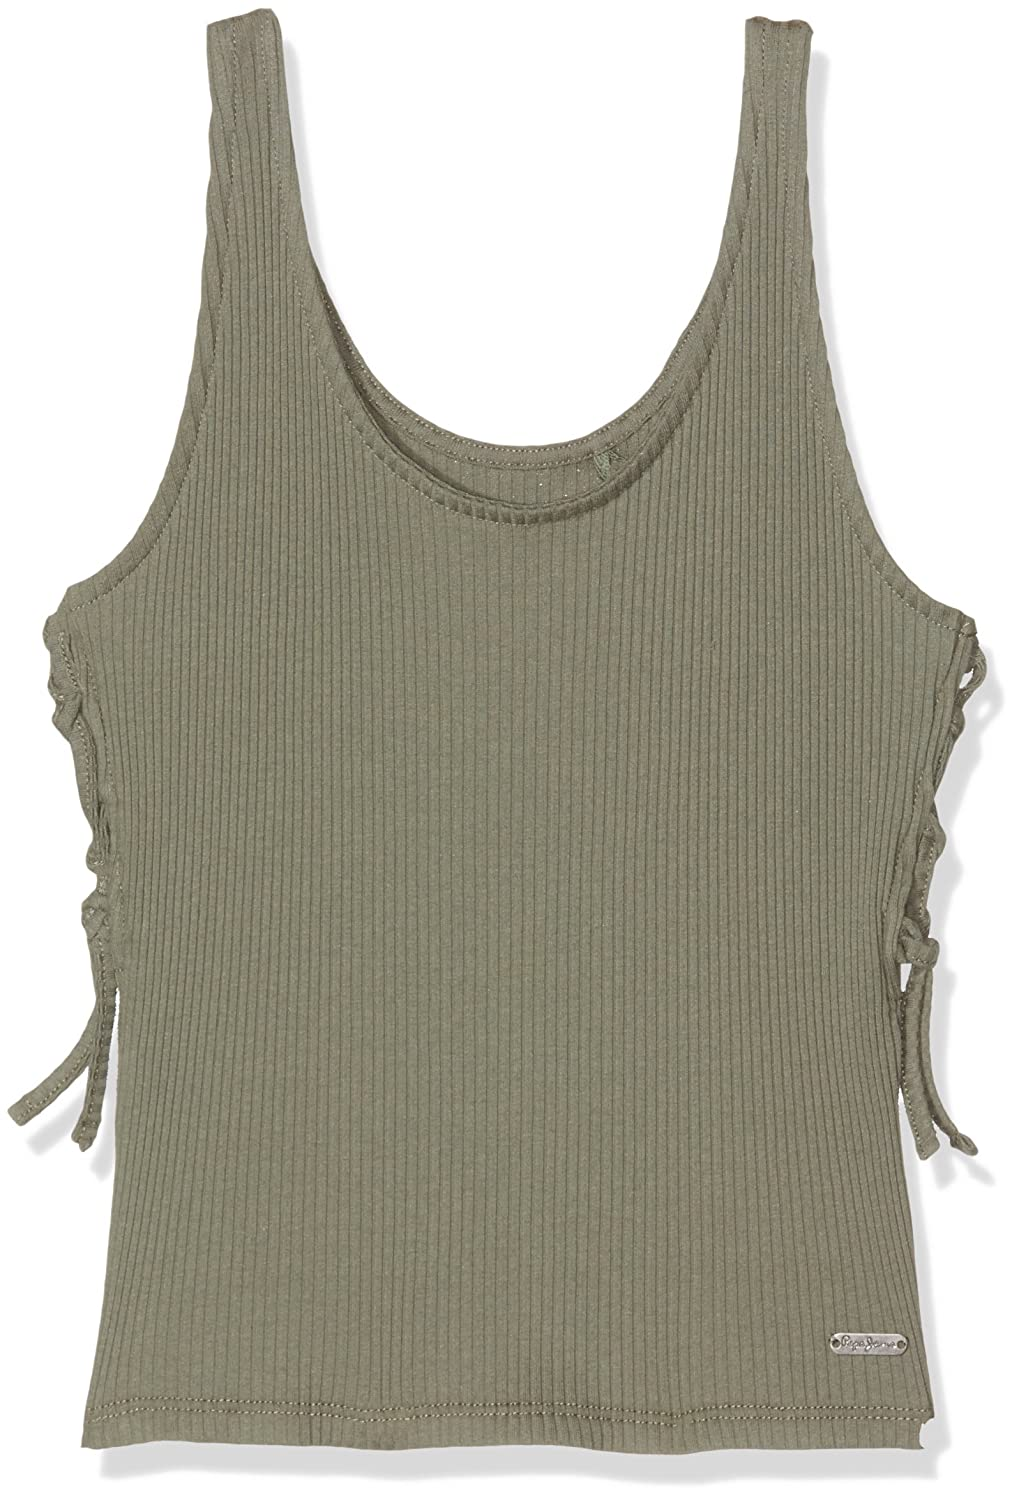 Pepe Jeans Girl's Cristina Teen Vest Girl' s Green (Army) 12 Years XS